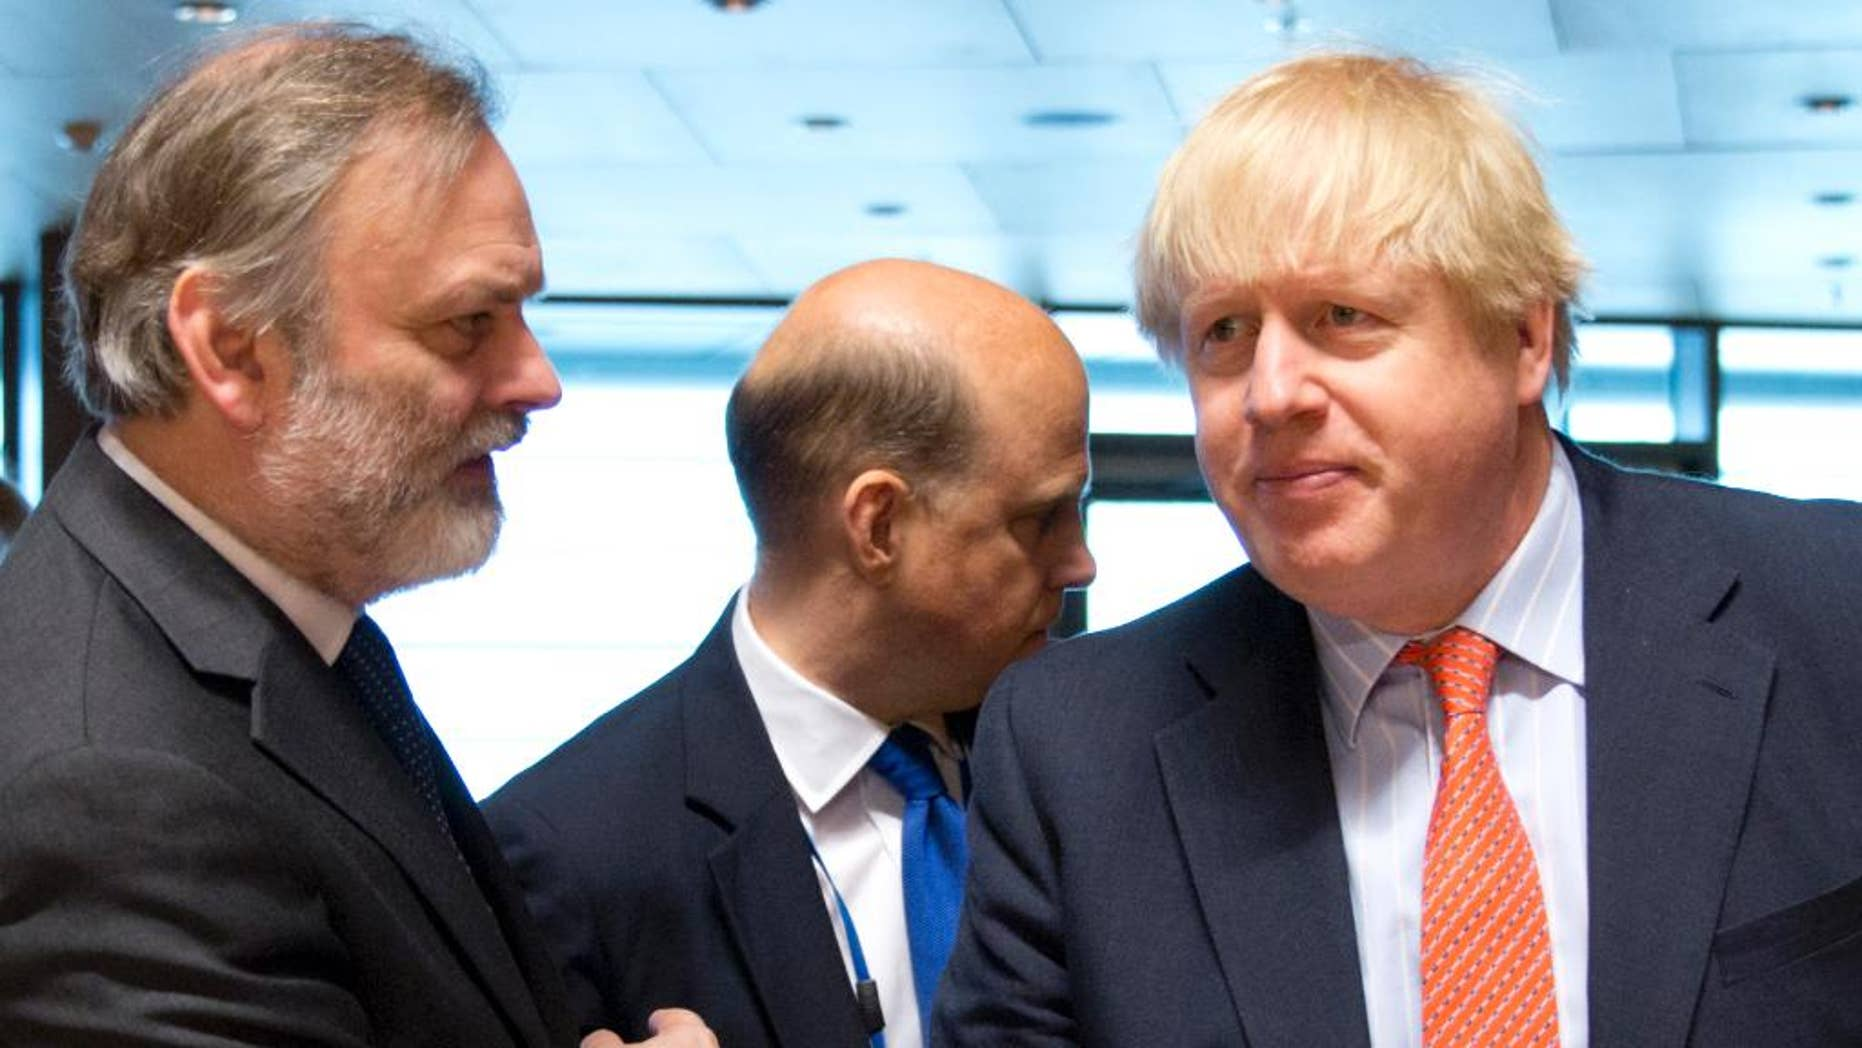 British Foreign Secretary Boris Johnson, right, speaks with the UK permanent representative to the EU, Tim Barrow, during a meeting of EU foreign ministers at the EU Council building in Luxembourg on Monday, April, 2017. European Union foreign ministers meet Monday to discuss the situation in Syria and Libya. (AP Photo/Virginia Mayo)